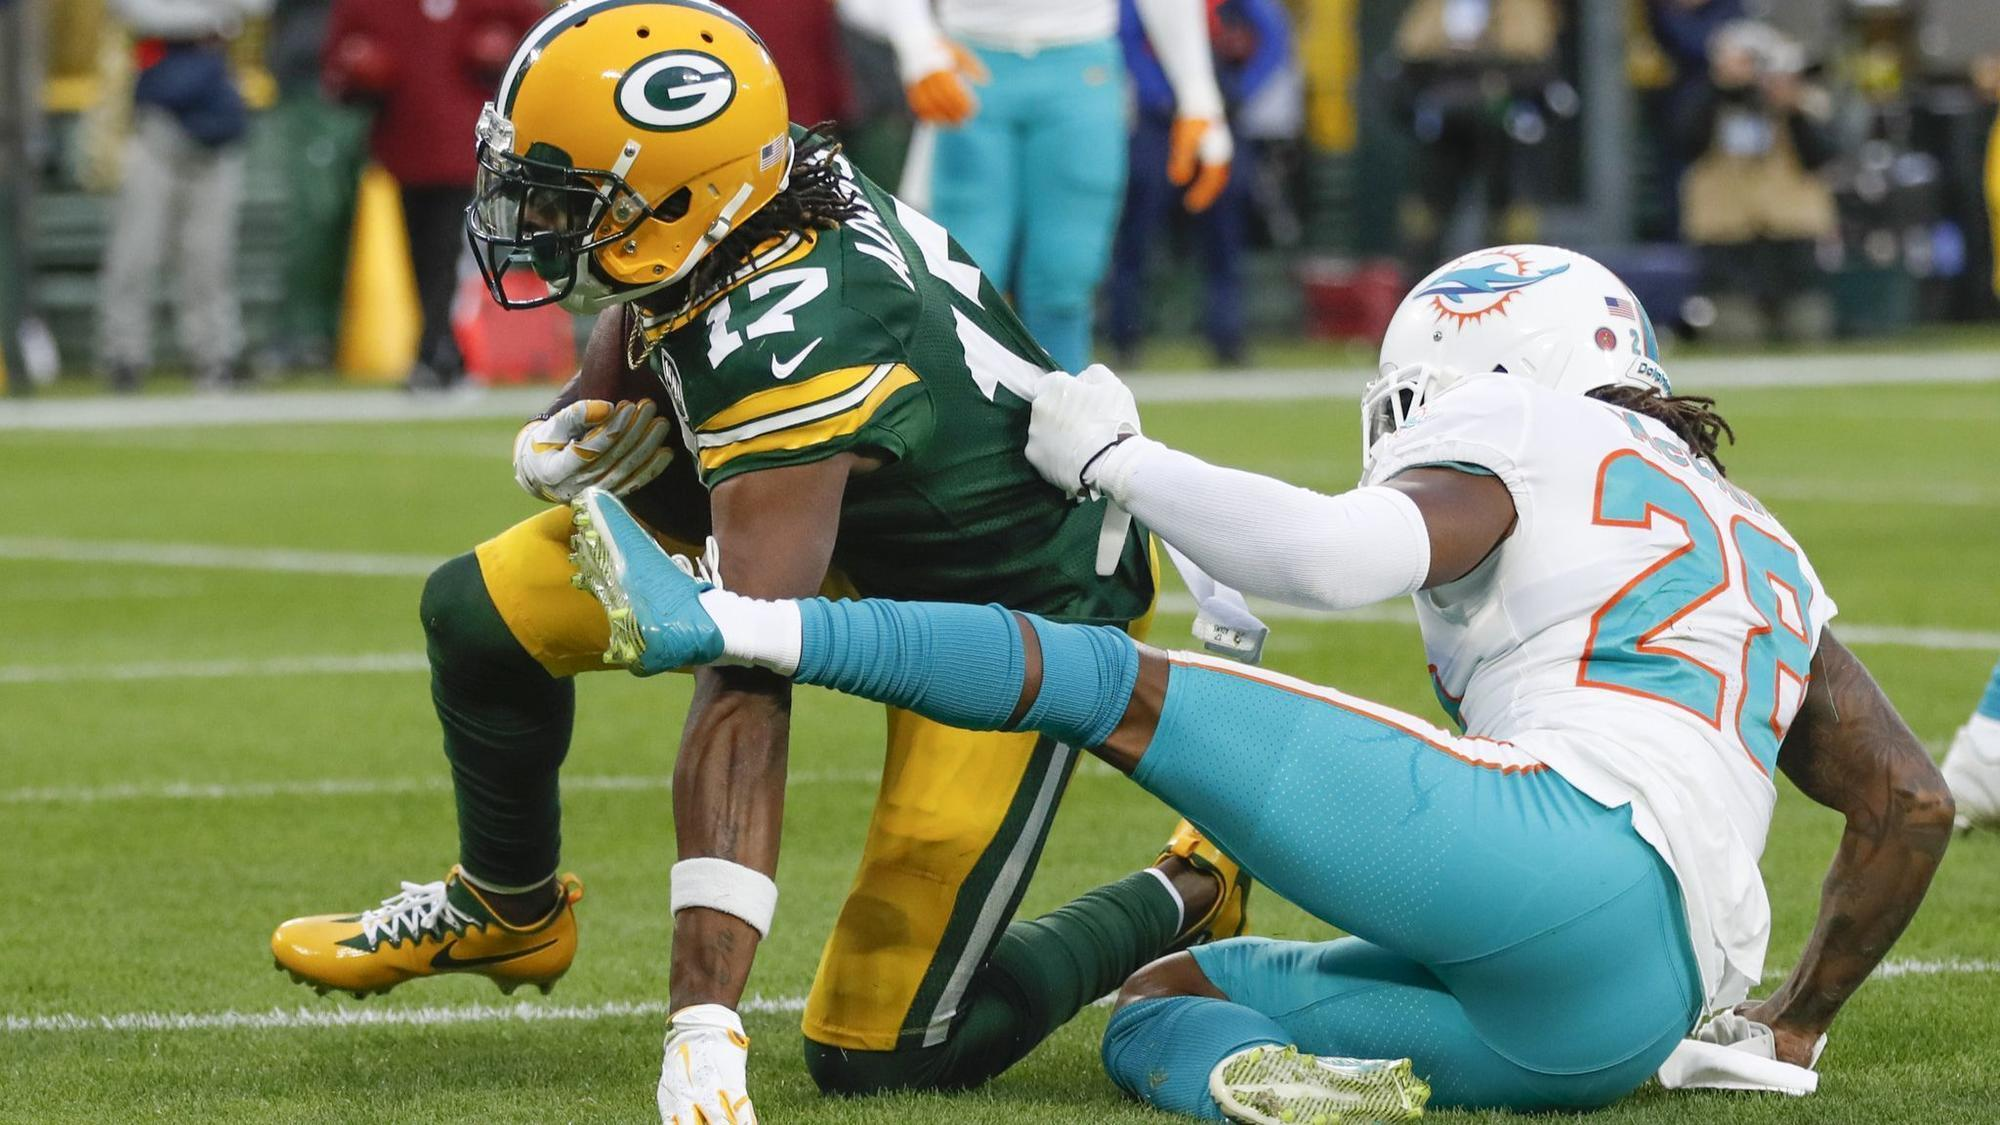 Fl-sp-dolphins-packers-bobby-mccain-20181111